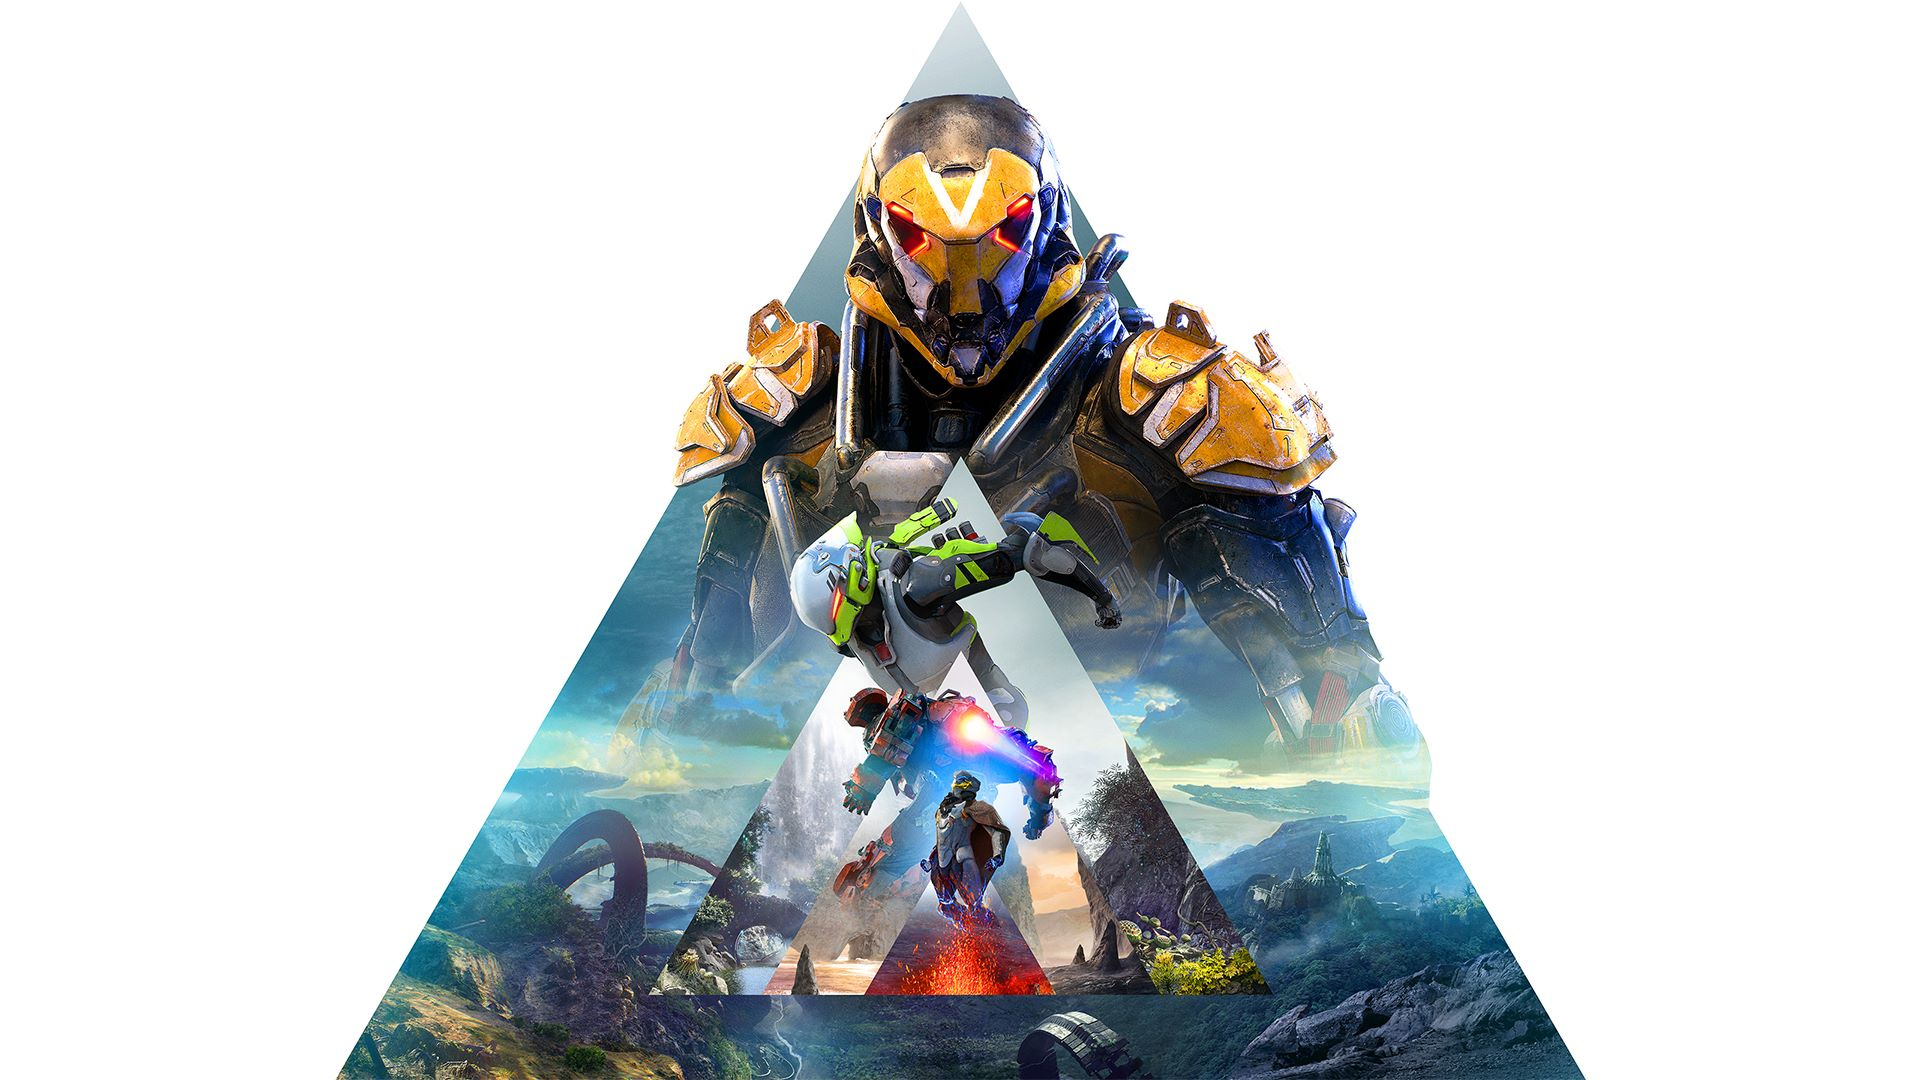 The Anthem open demo starts today, prior VIP progress carries over